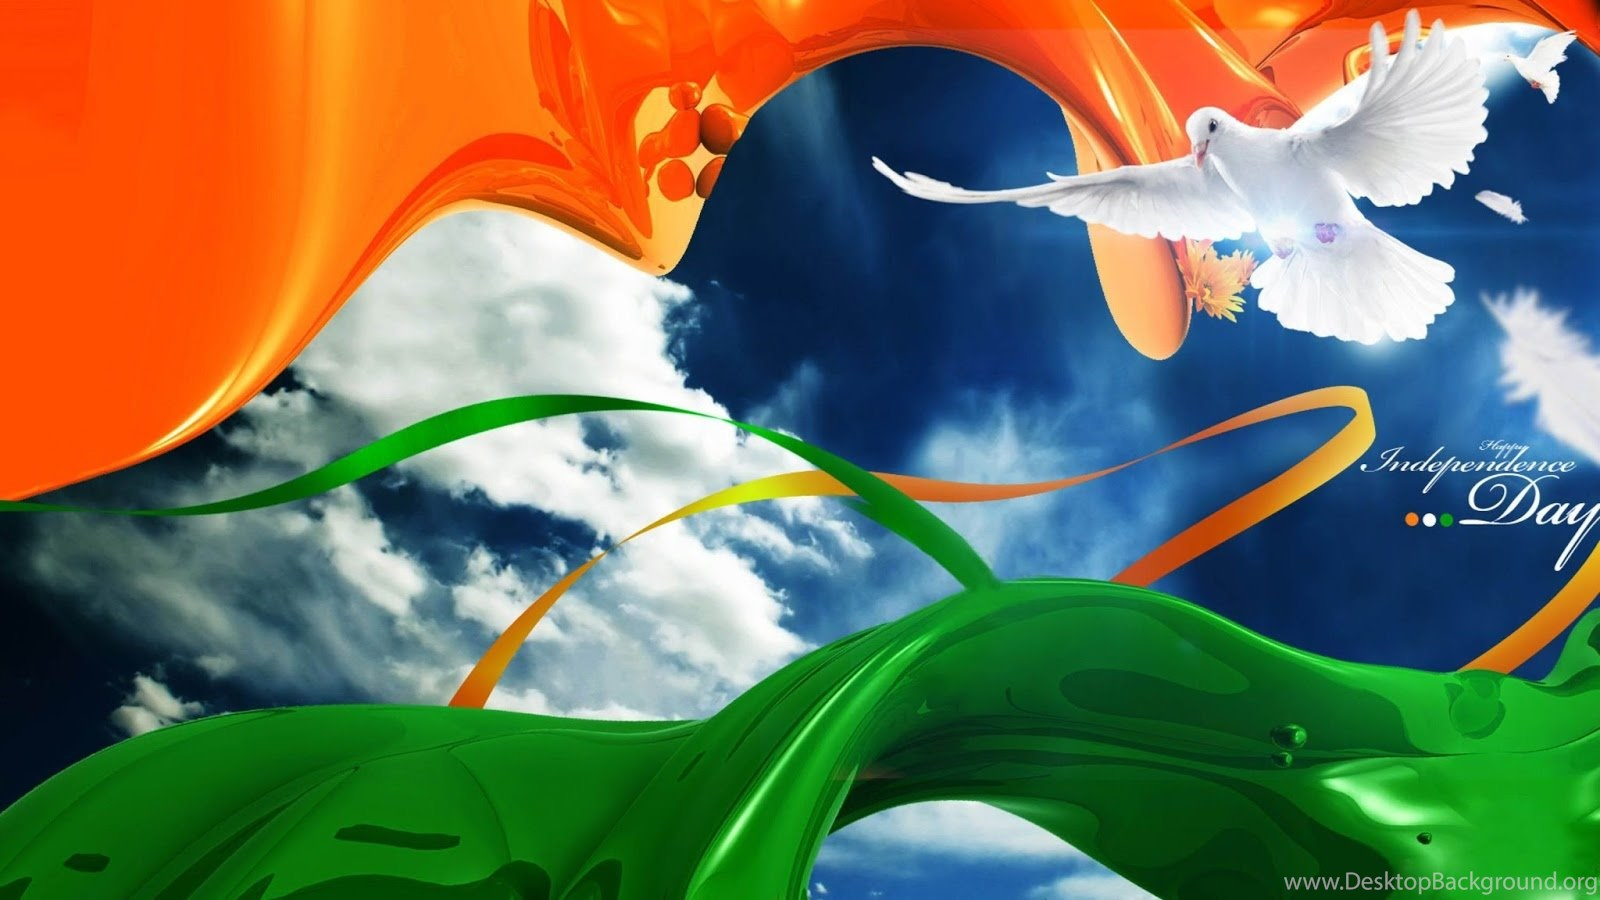 New Republic Day Wallpapers And Greeting For Facebook Cover And